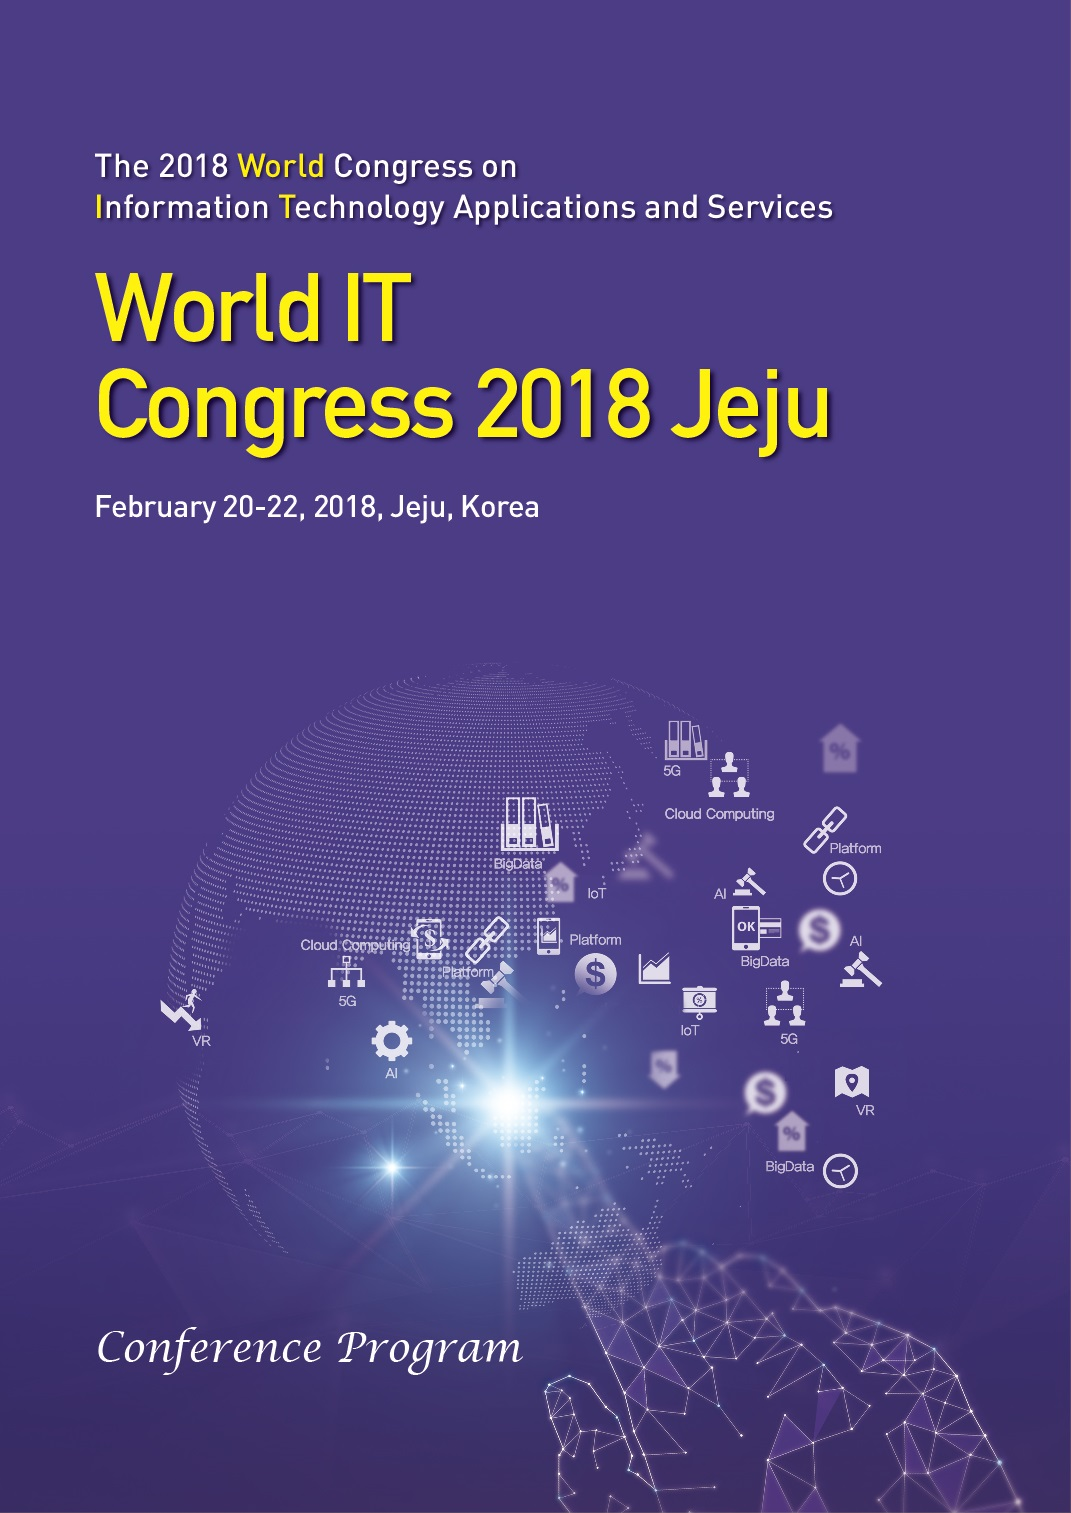 The 2018 World Congress on Information Technology Applications